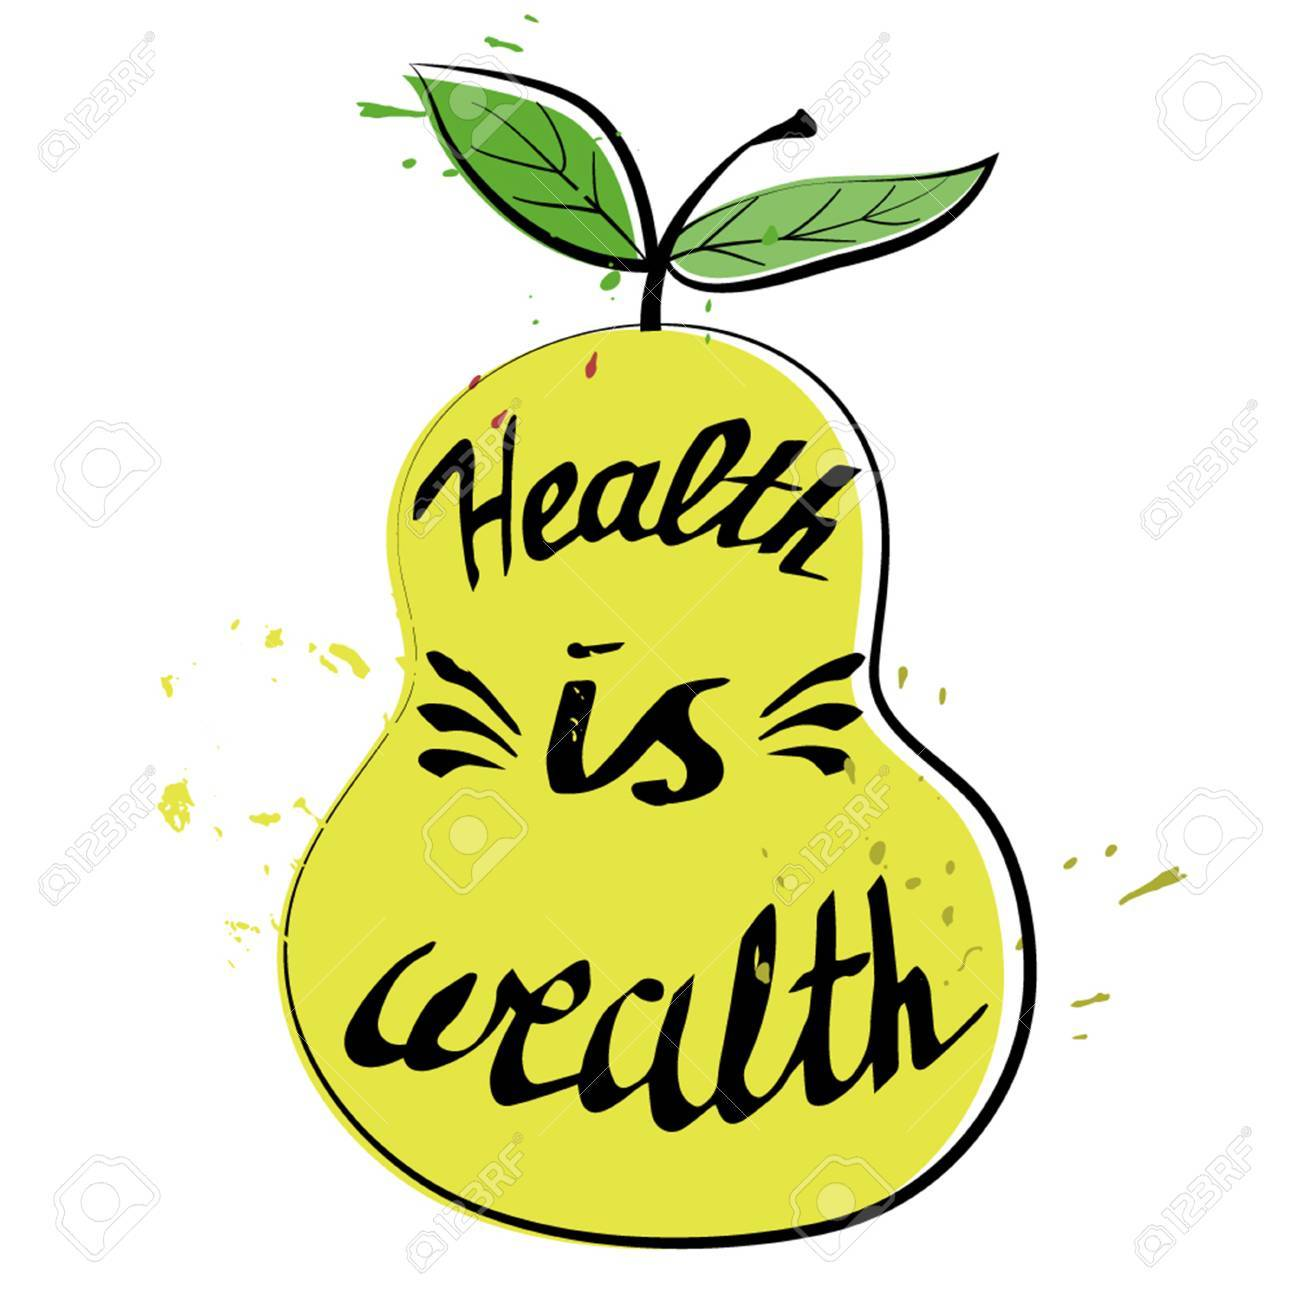 Hand Drawn Typography Poster Health Is Wealth In A Pear Royalty Free Cliparts Vectors And Stock Illustration Image 46322921